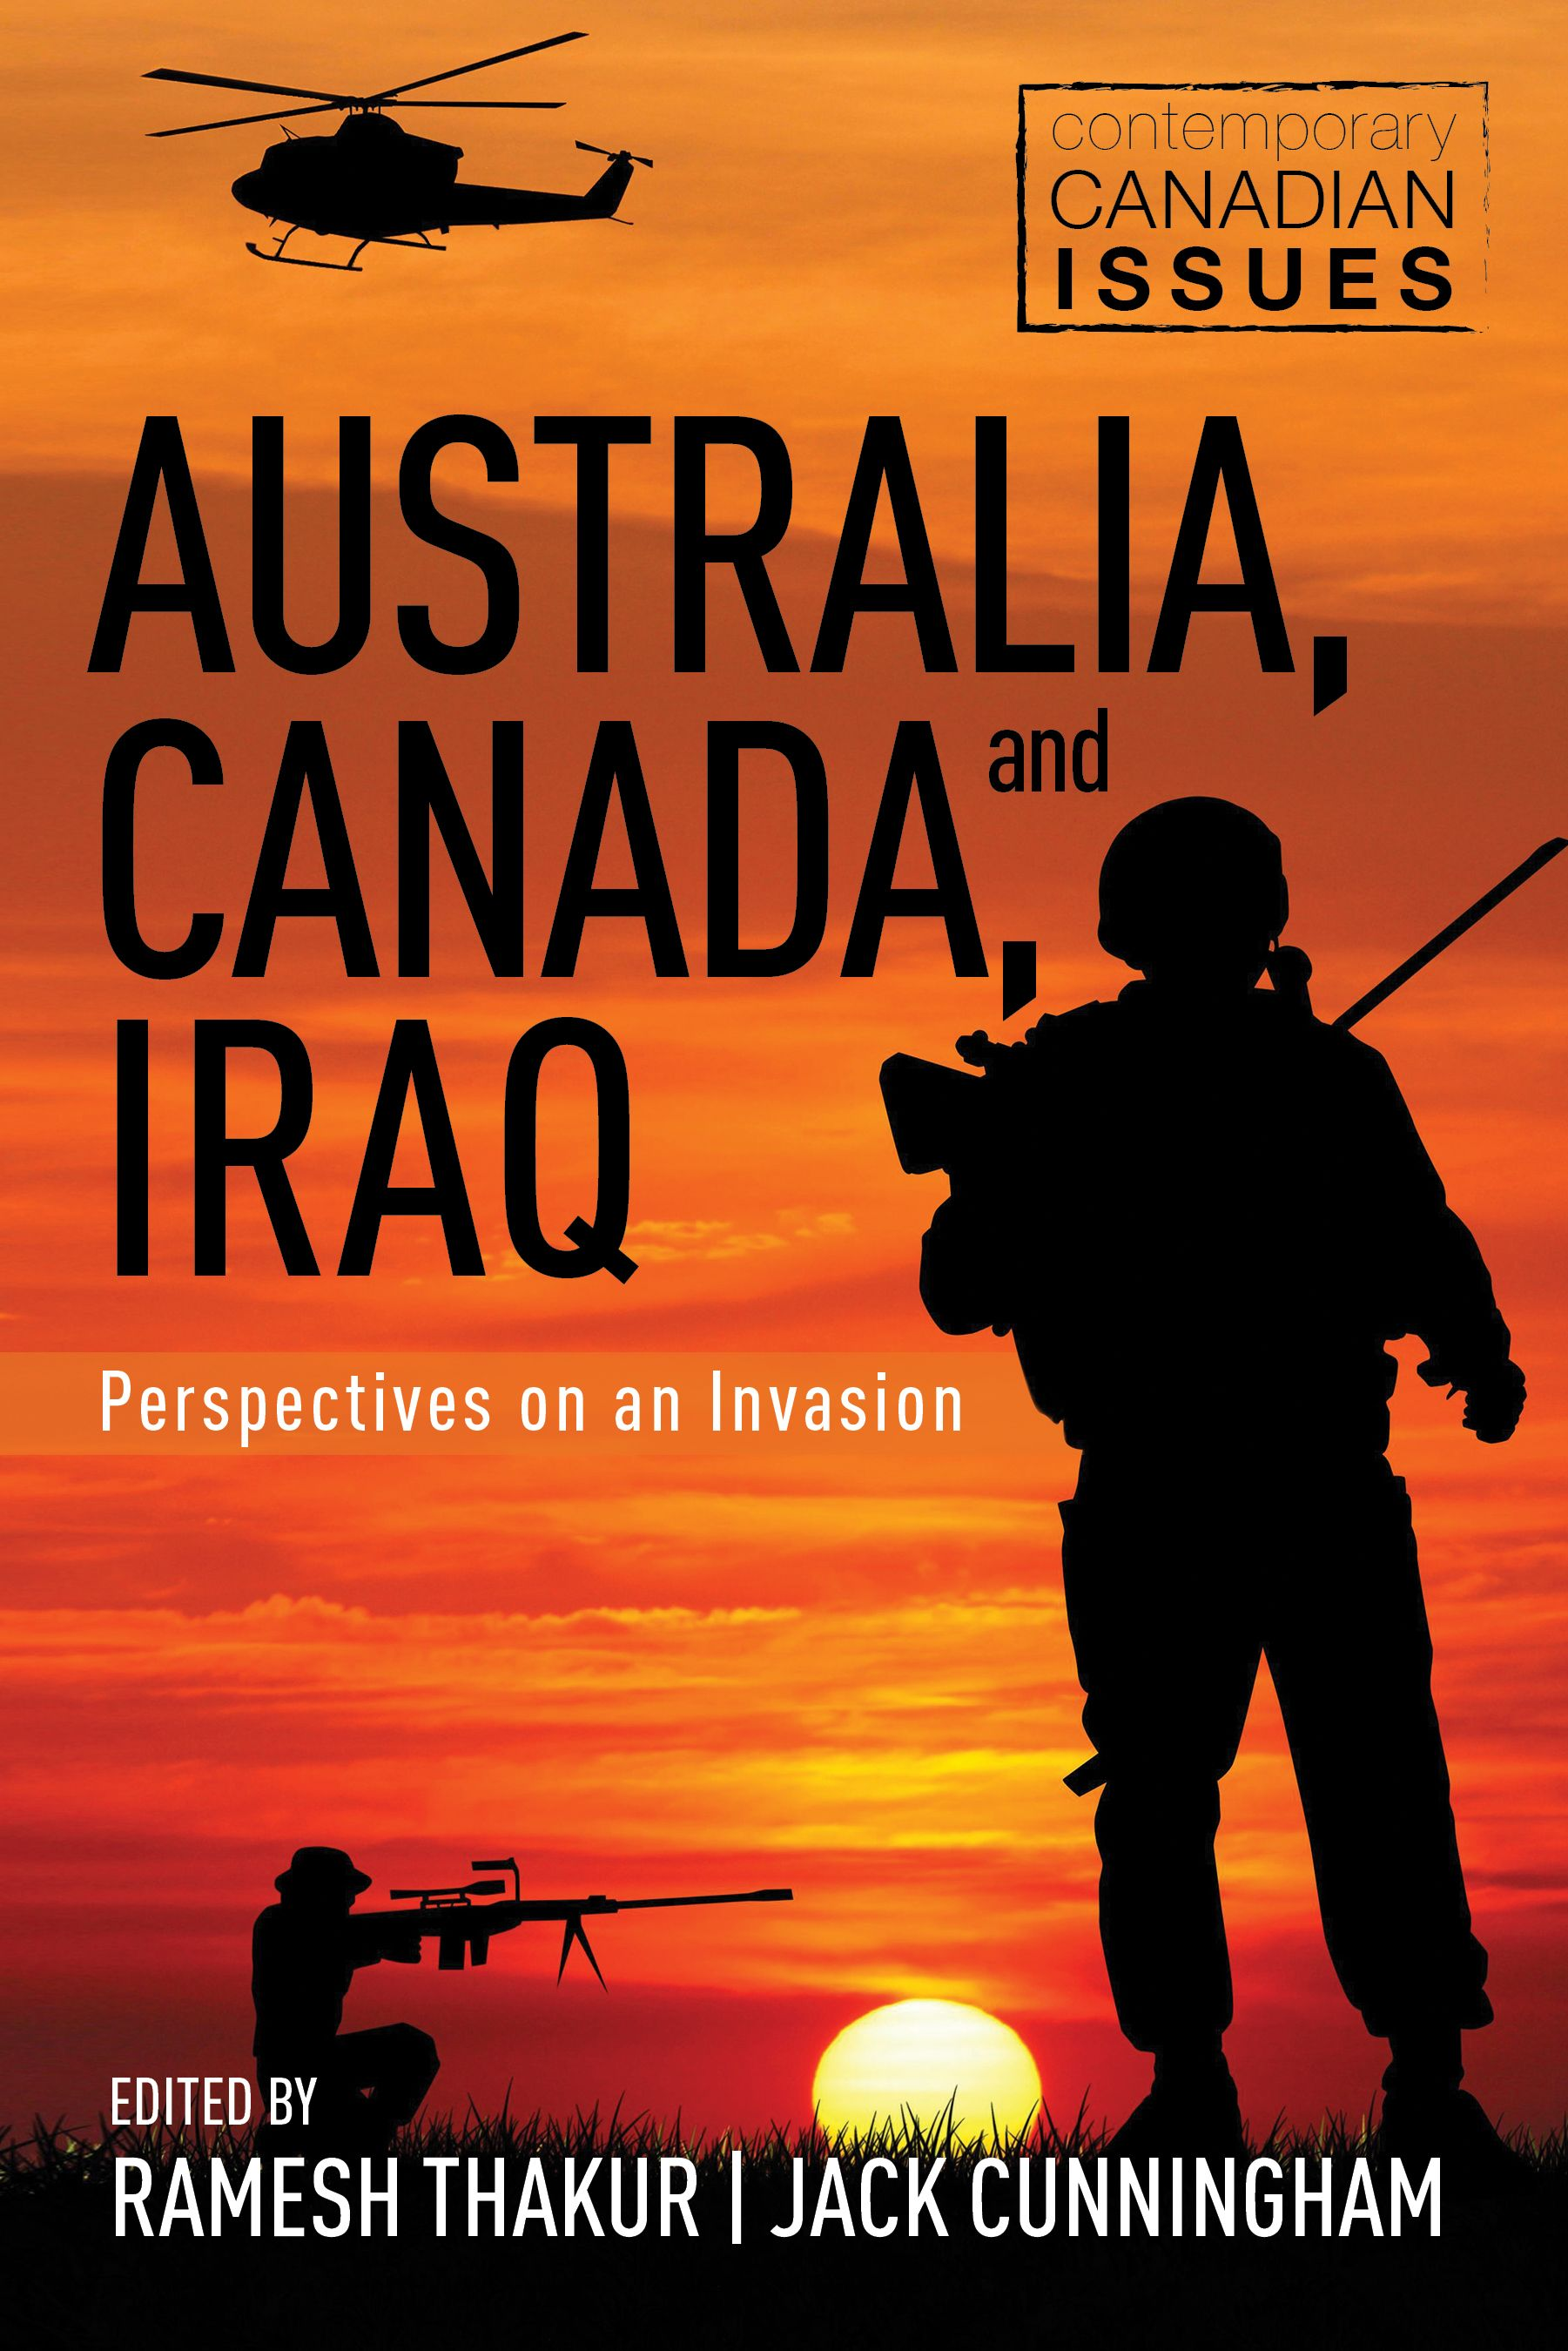 Computer Science Essay Topics Australia Canada And Iraq Edited By Ramesh Thakur And Jack Cunningham  A  Collection Of Essays On The War In Iraq Including Pieces By Jean Chrtien  And  Business Essays also Essay Vs Paper Australia Canada And Iraq Edited By Ramesh Thakur And Jack  Apa Essay Papers